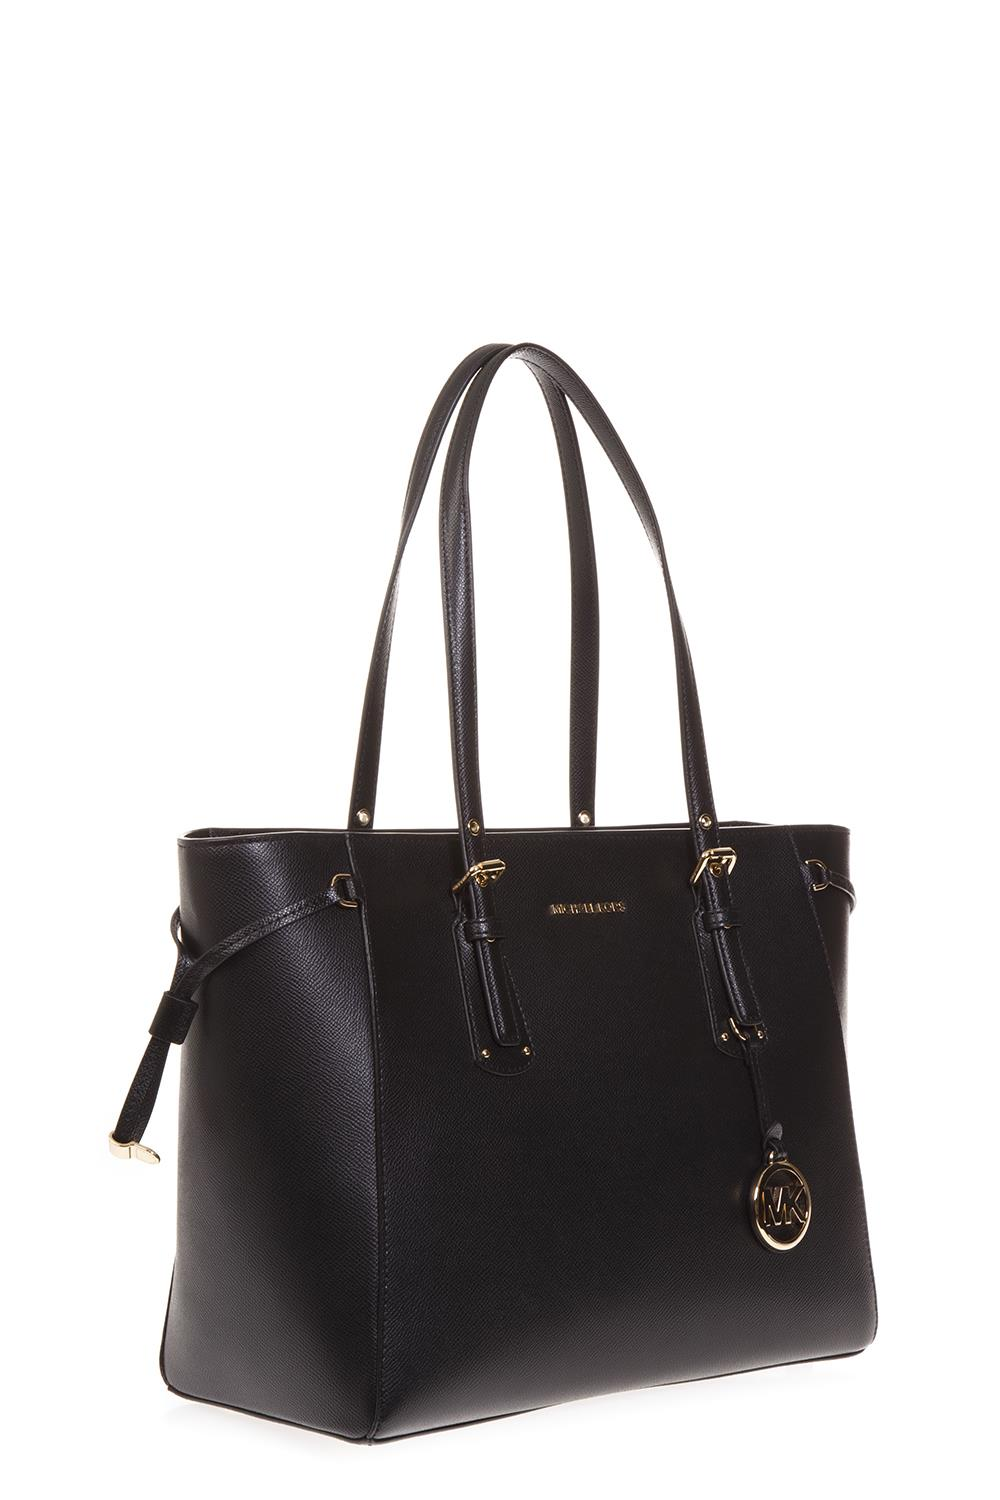 BLACK LEATHER TOTE BAG SS 2019 - MICHAEL MICHAEL KORS - Boutique Galiano 6c4270ccdf5cf